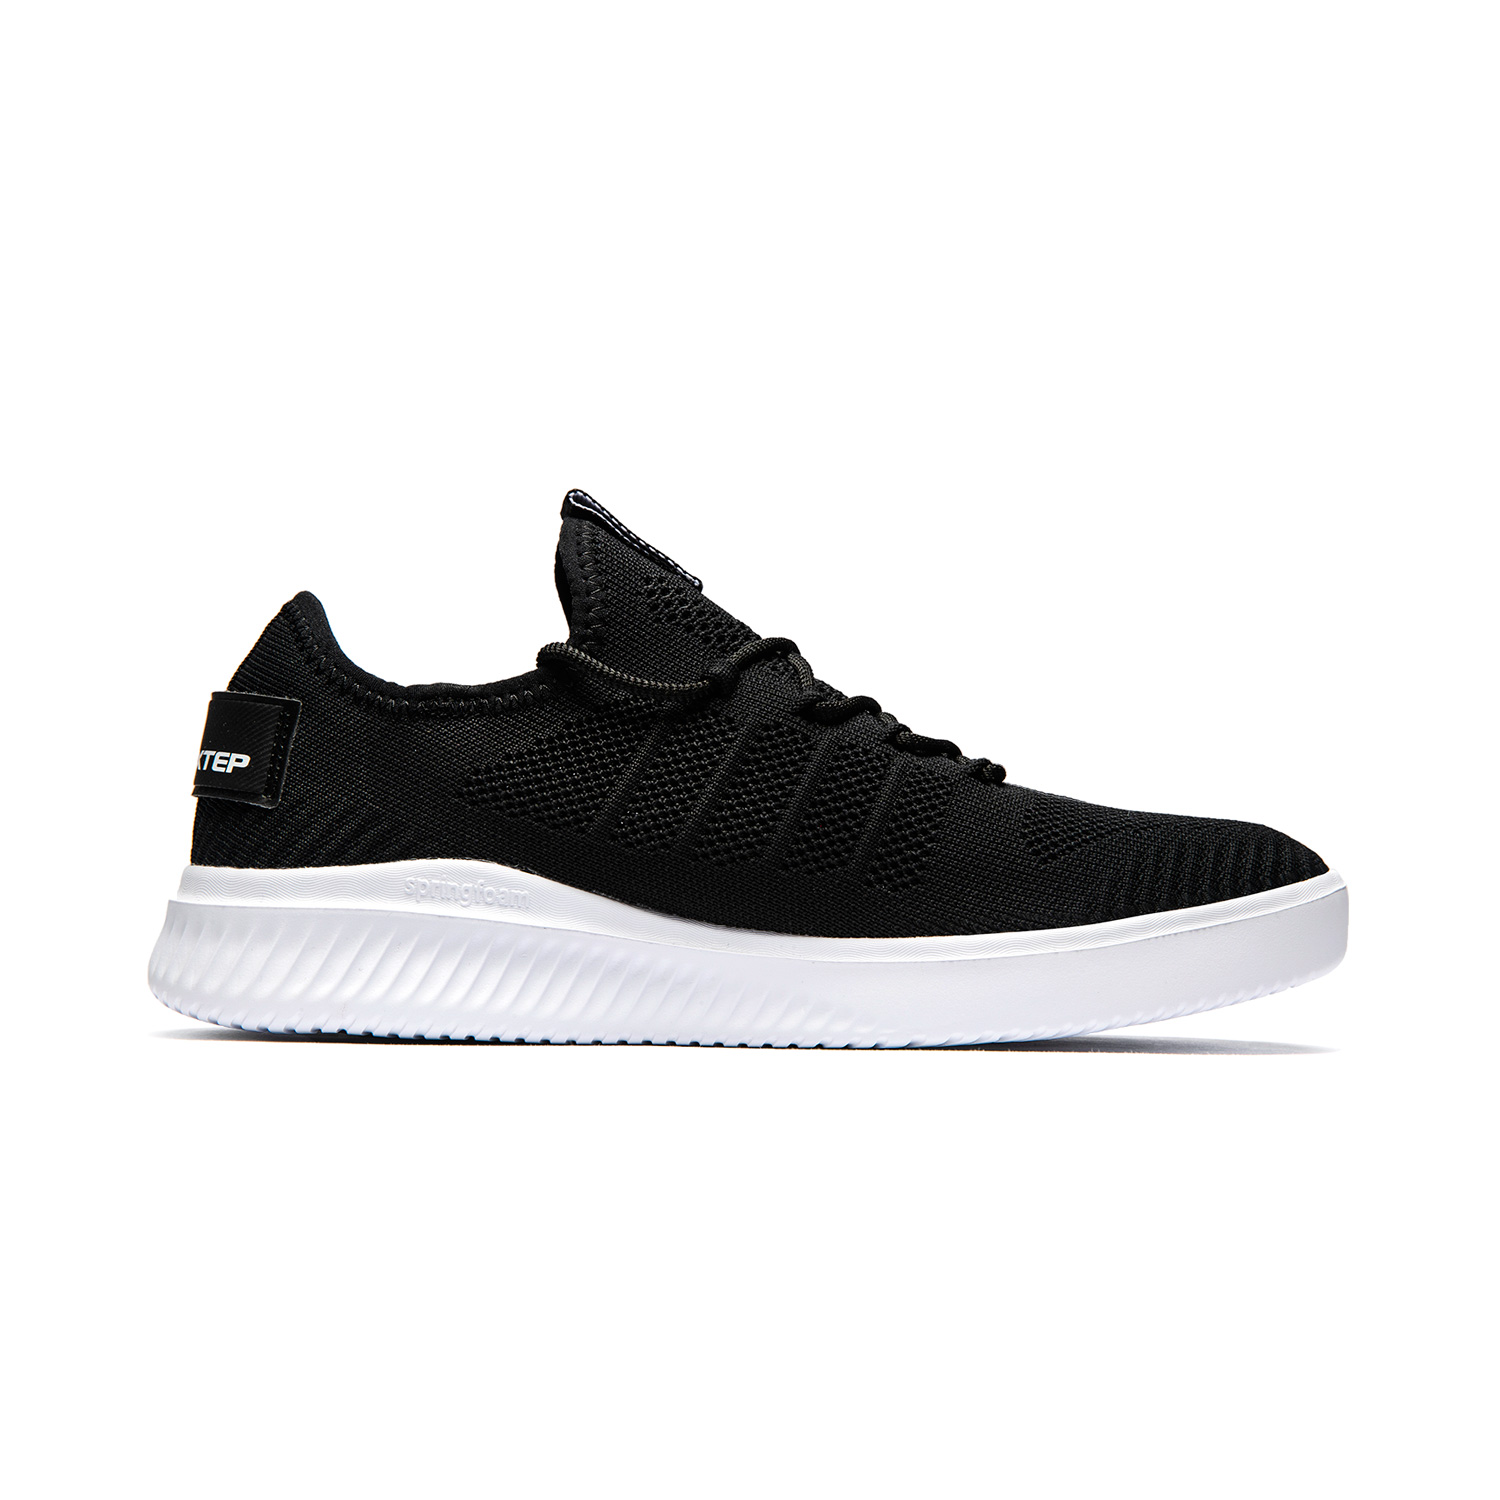 Men's Sneakers Mesh Sports Shoes